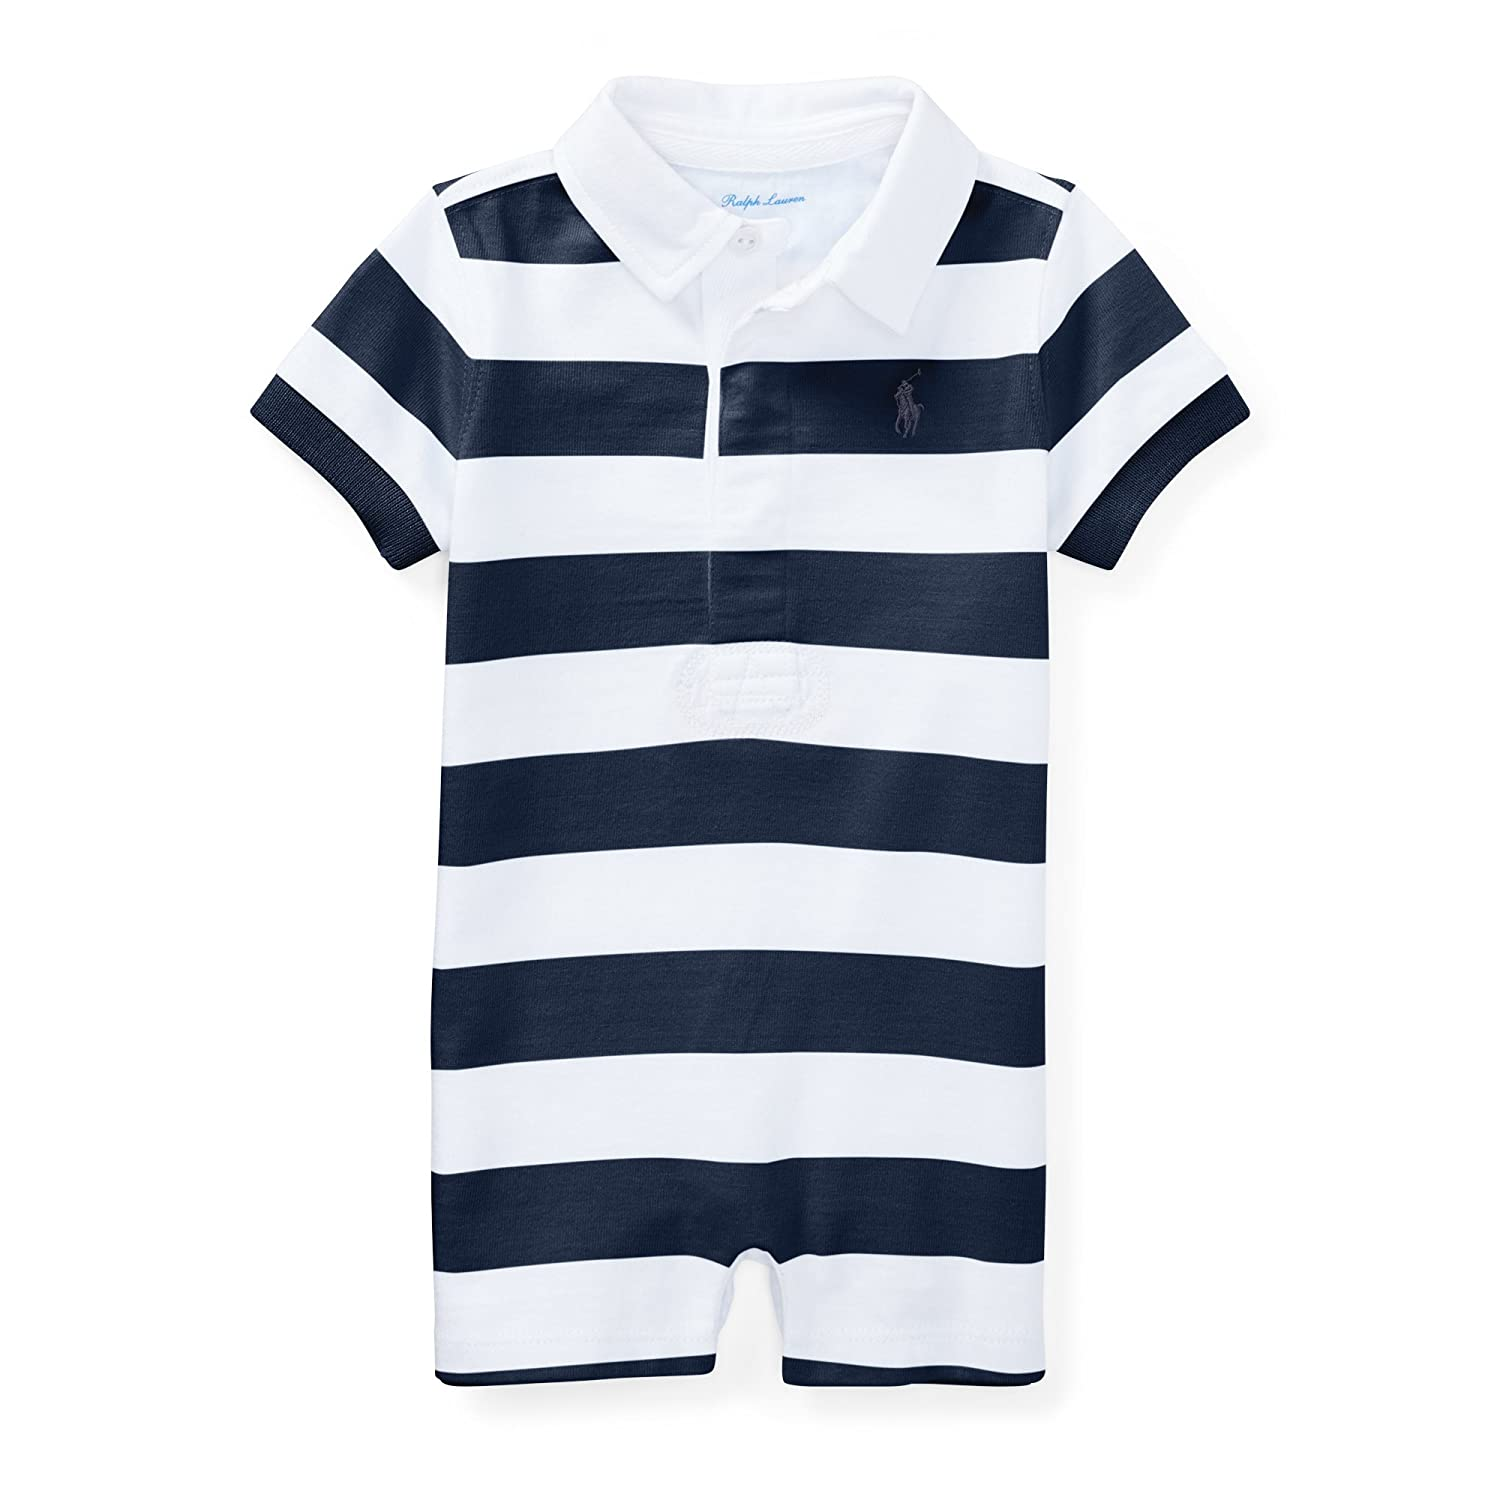 Ralph Lauren Baby Boys Striped Cotton Rugby Shortall Summer Navy/White)